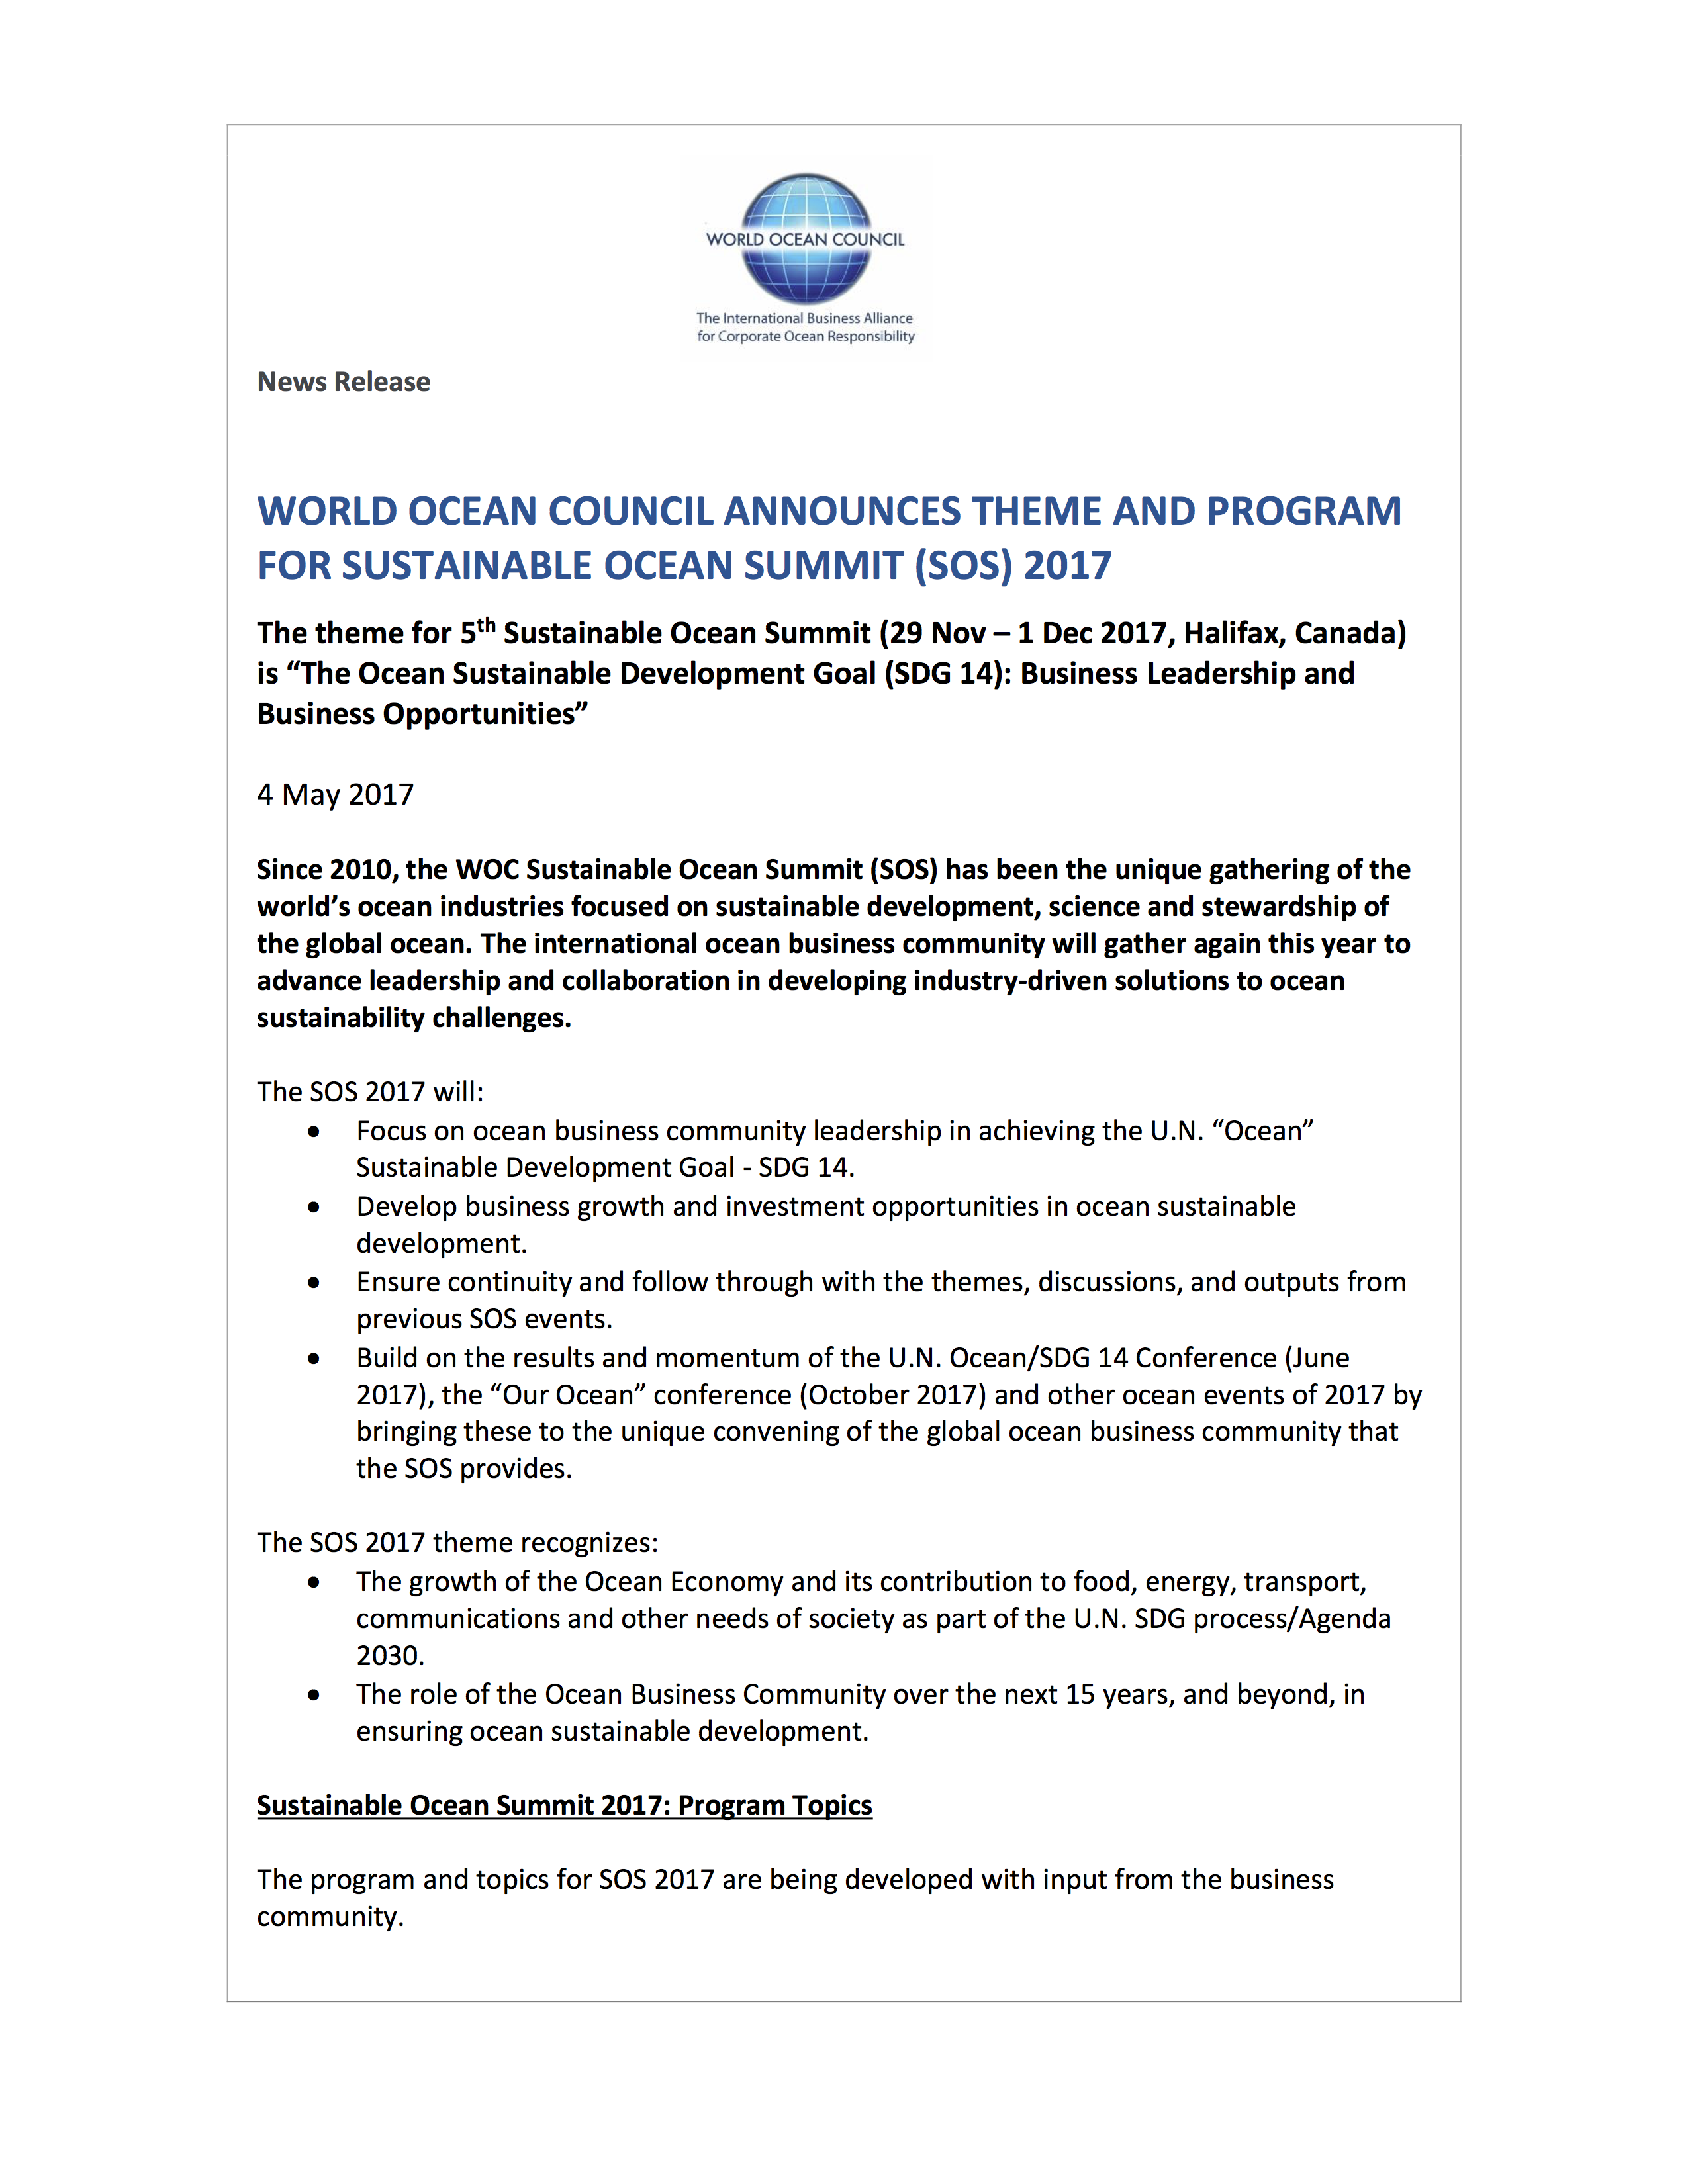 WOC News Release SOS 2017 Theme and Program